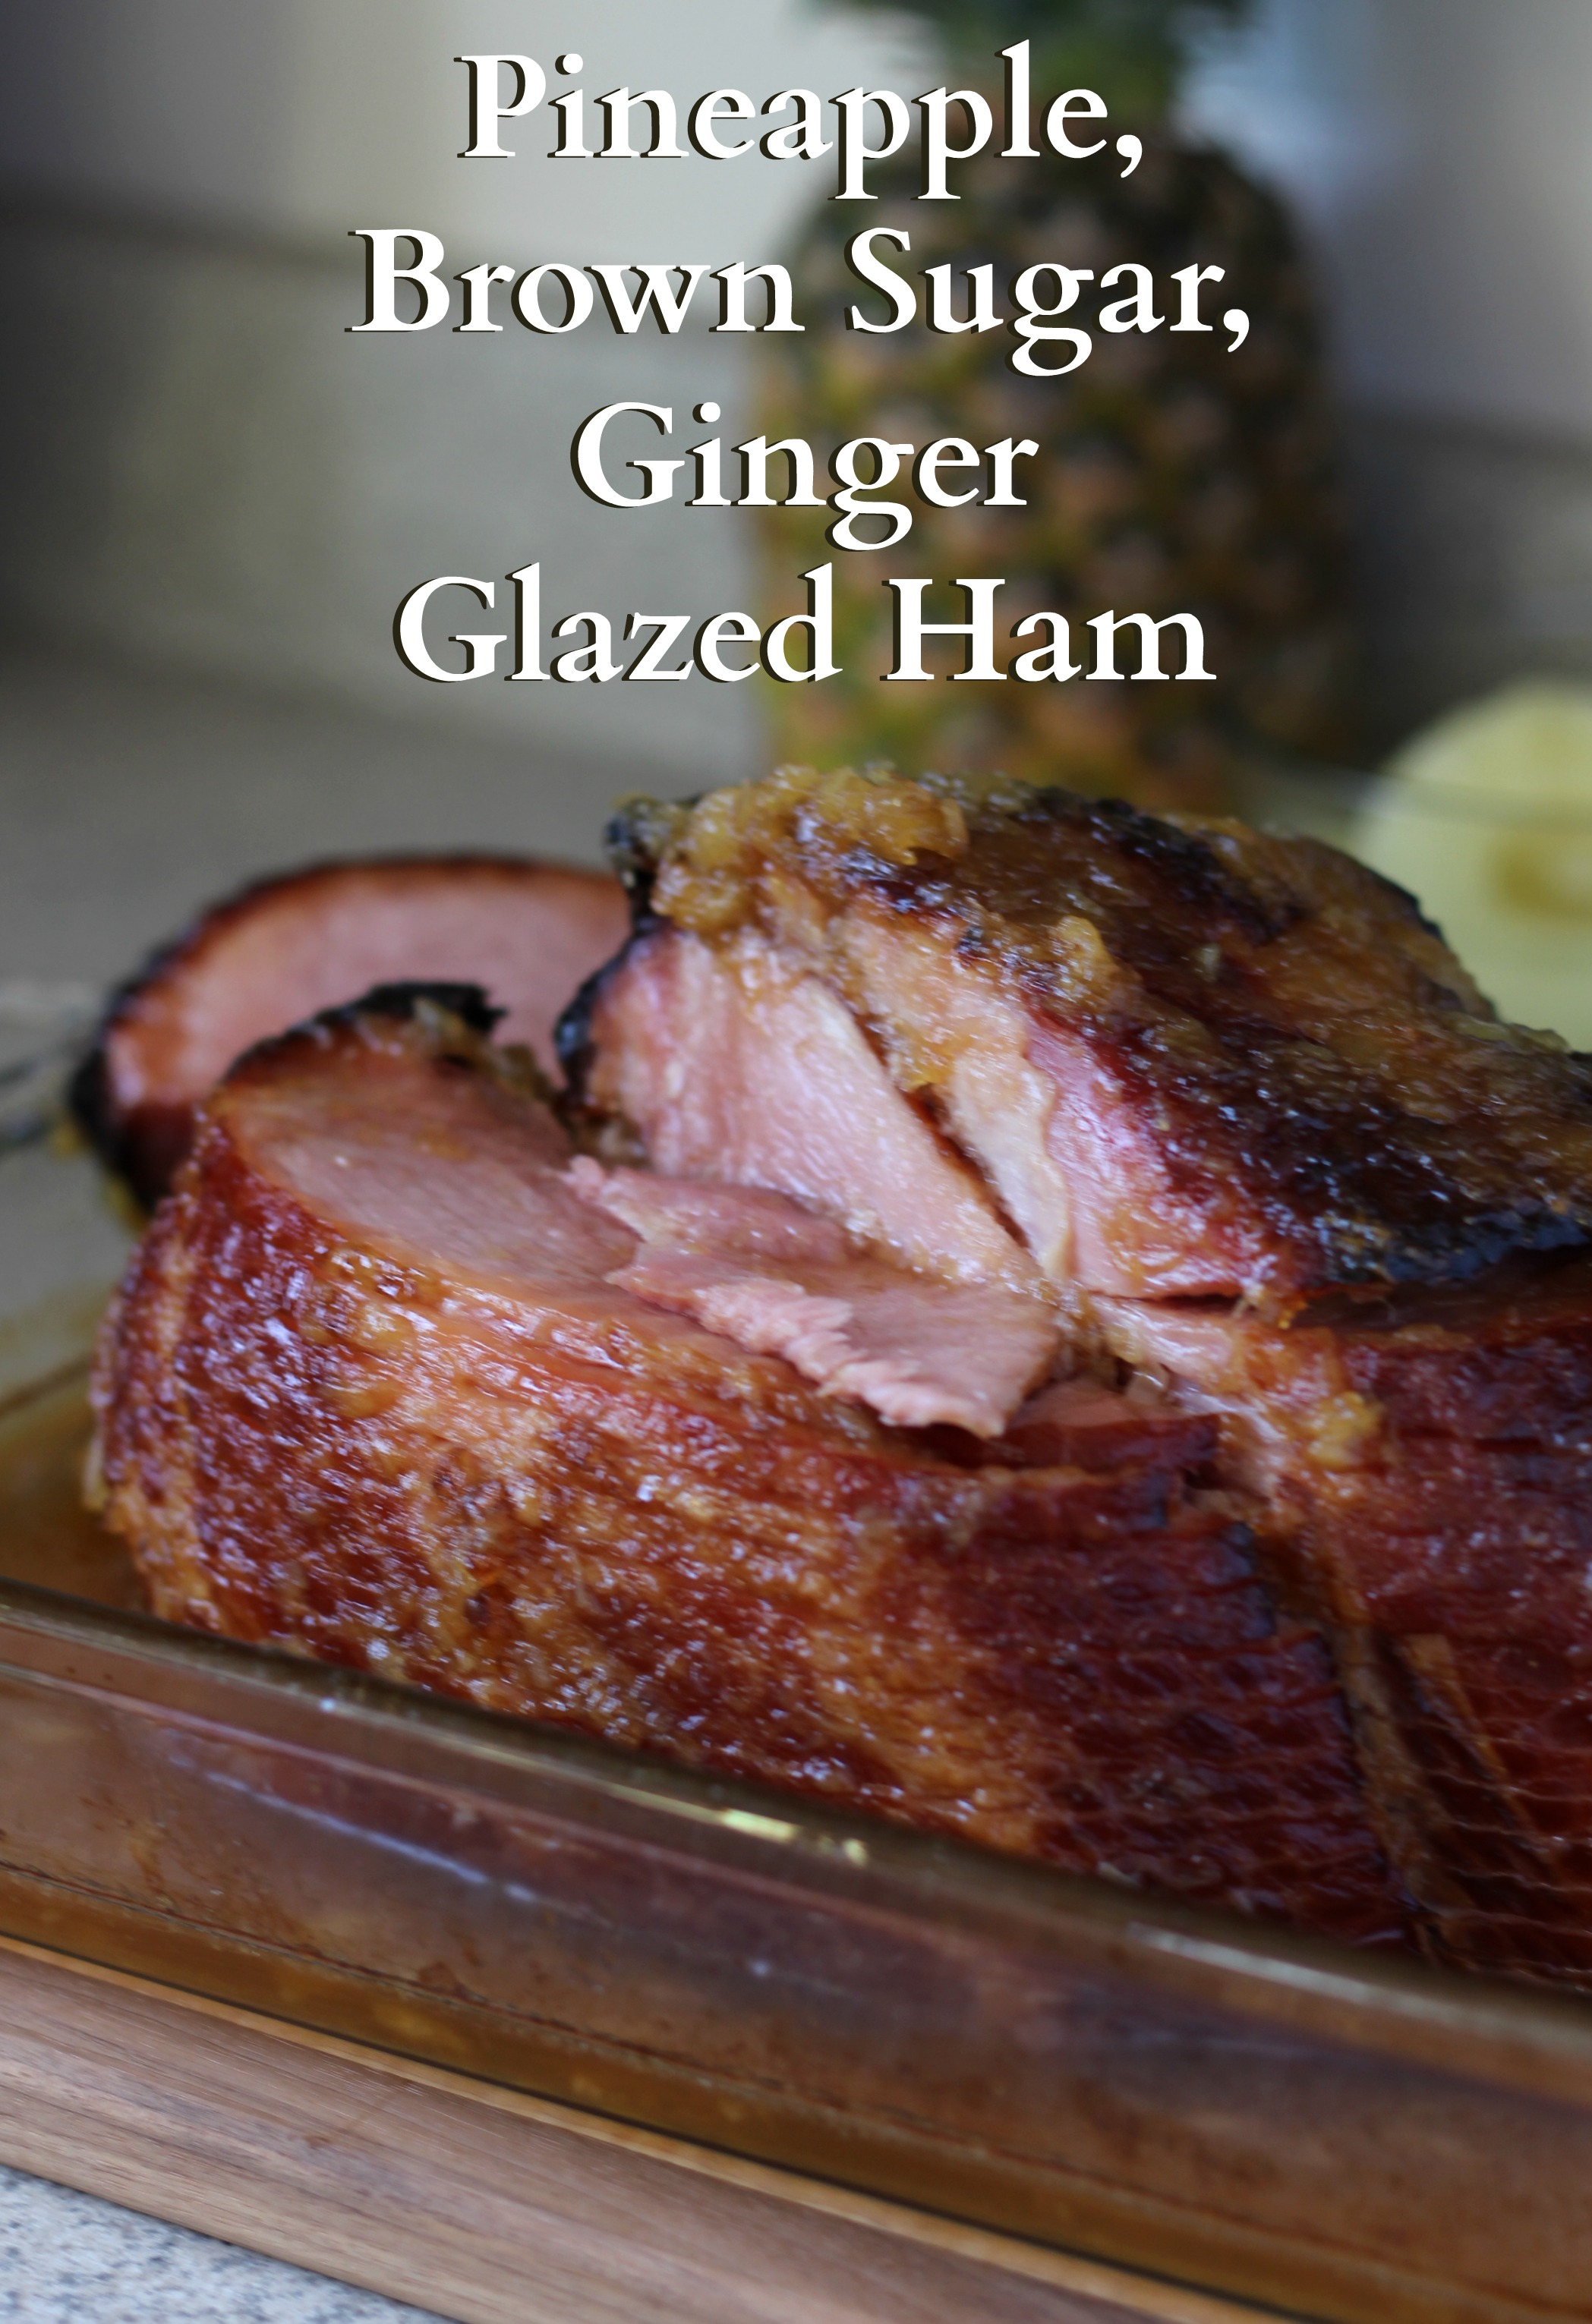 Pineapple, Brown Sugar, Ginger Glazed Ham